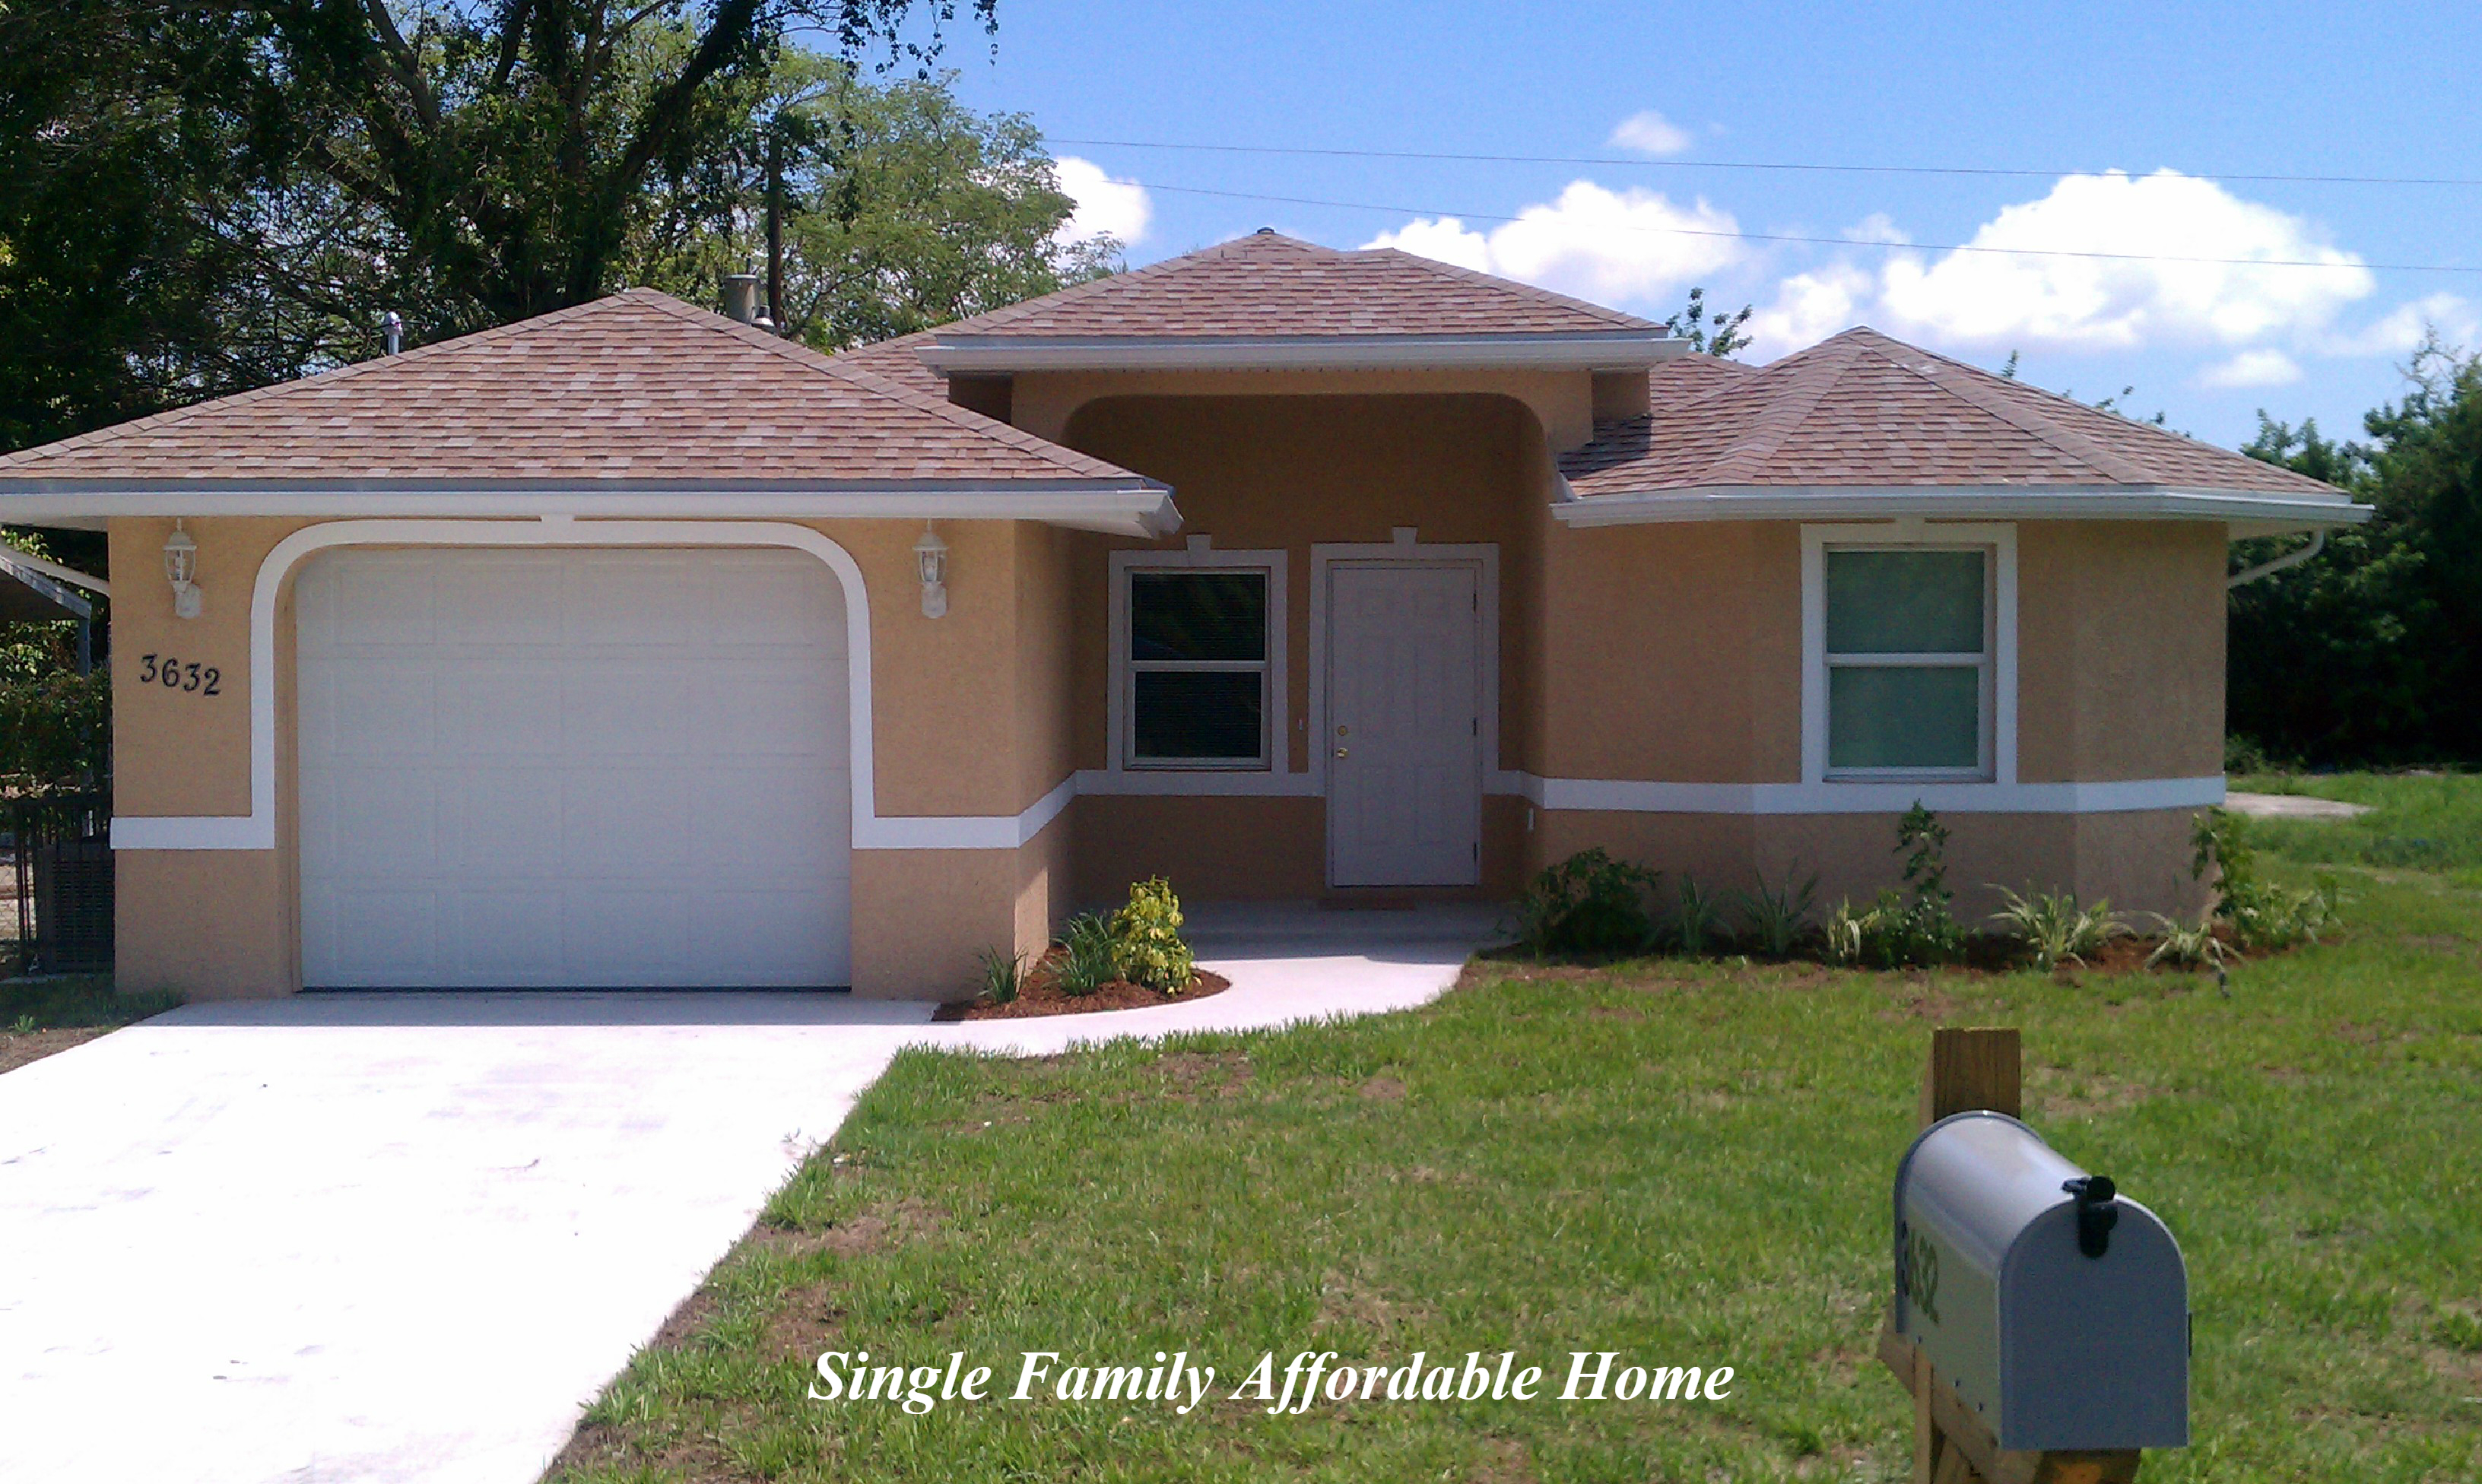 Single Family Affordable Home